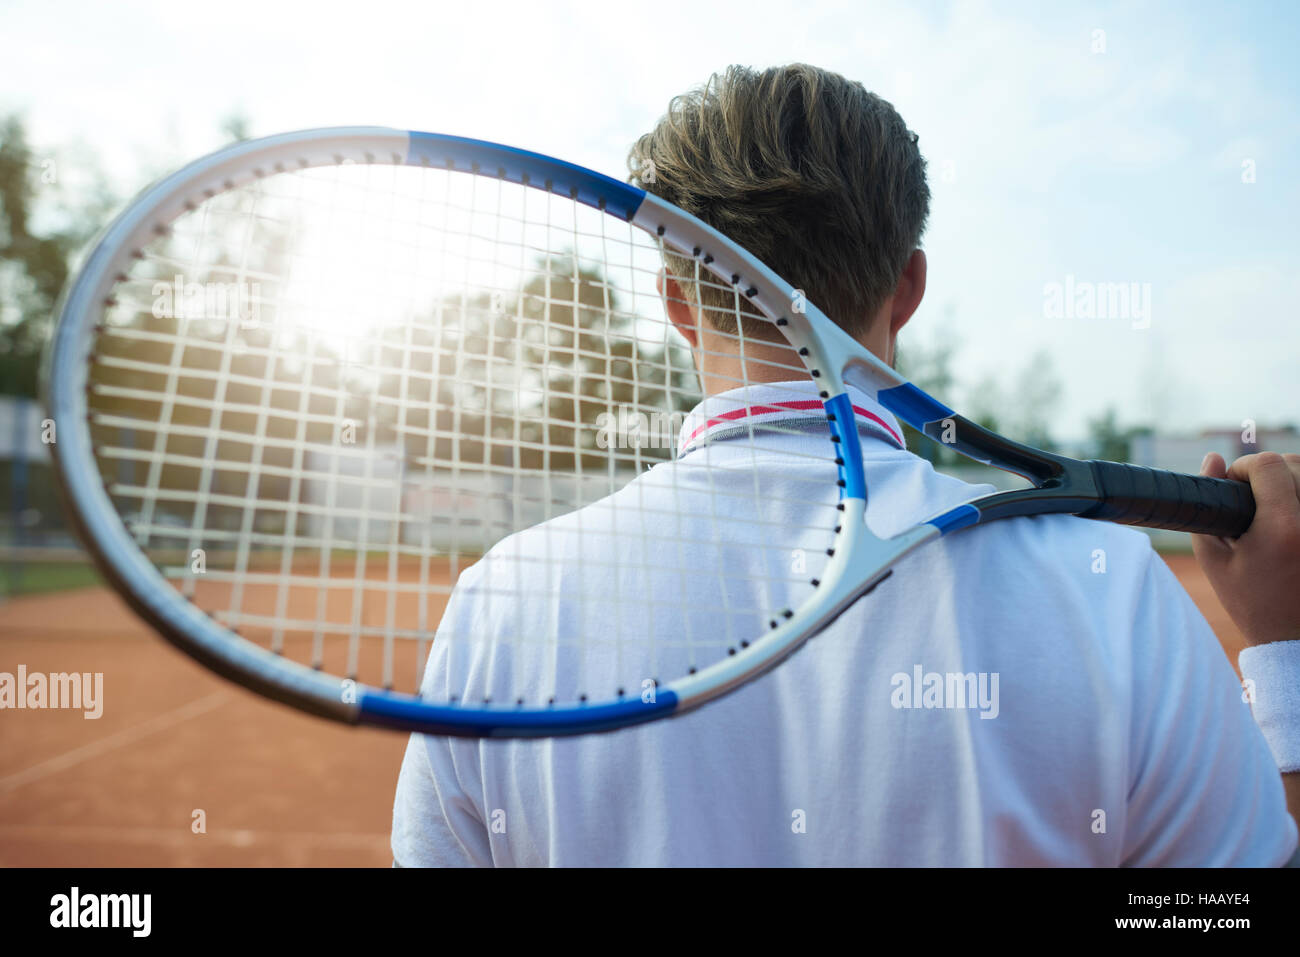 Man is holding a tennis racket - Stock Image